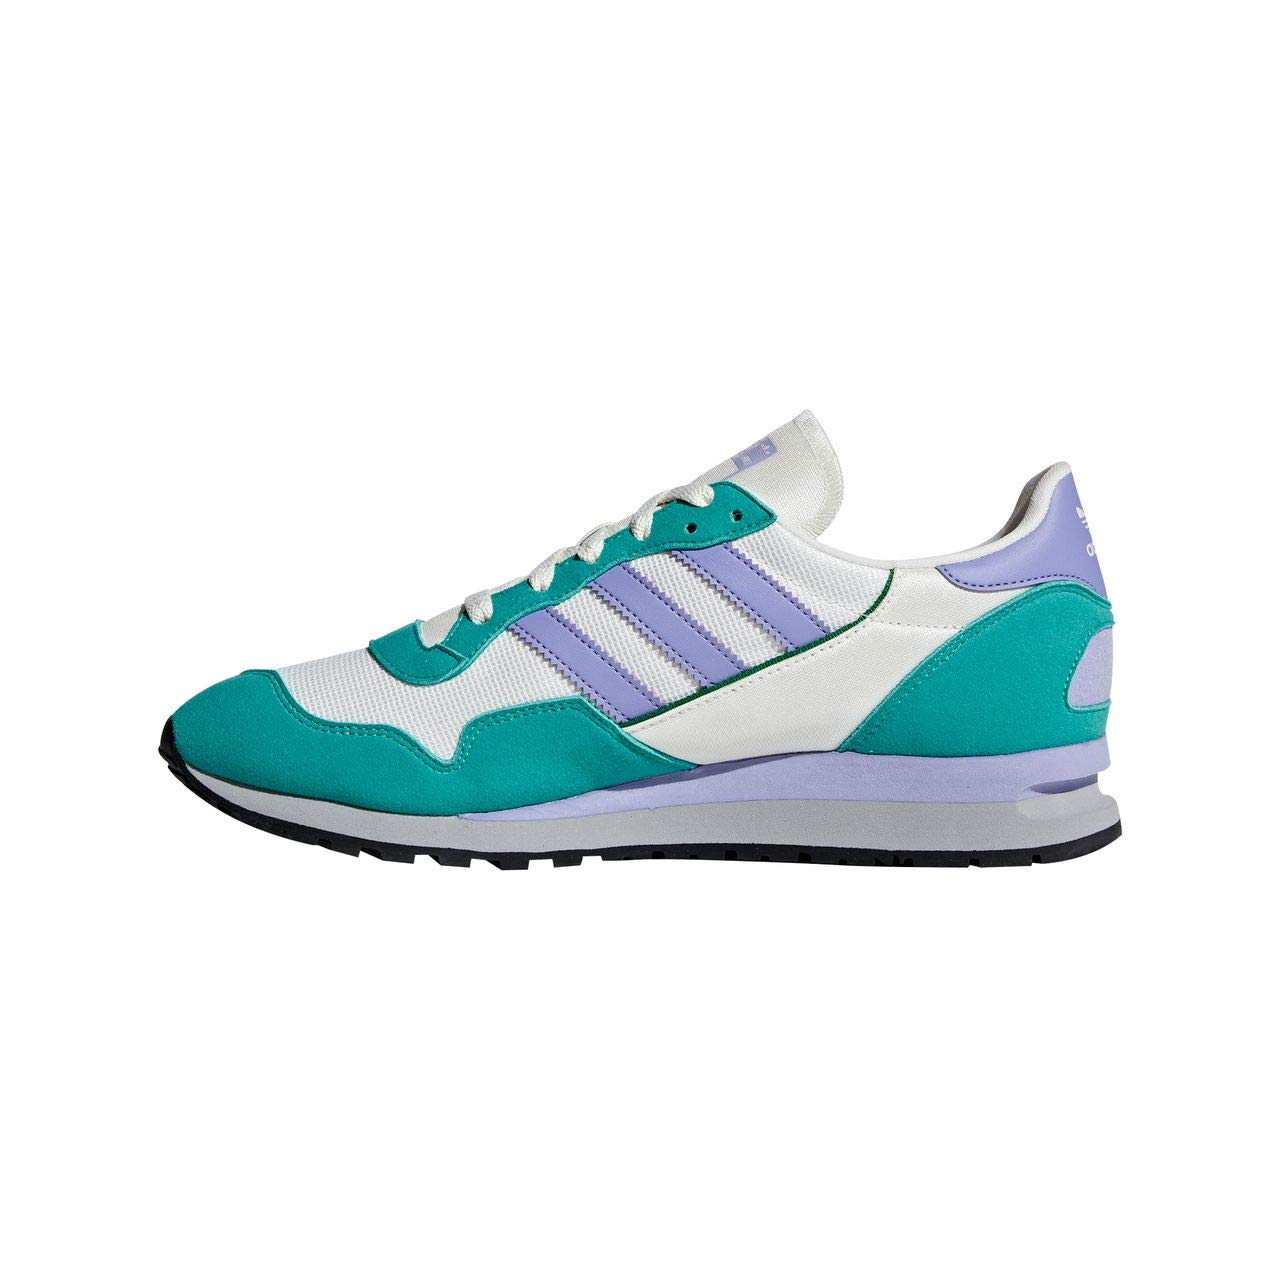 Adidas Lowertree Lowertree Lowertree Spzl, Scape per Sport Outdoor Uomo | Negozio famoso